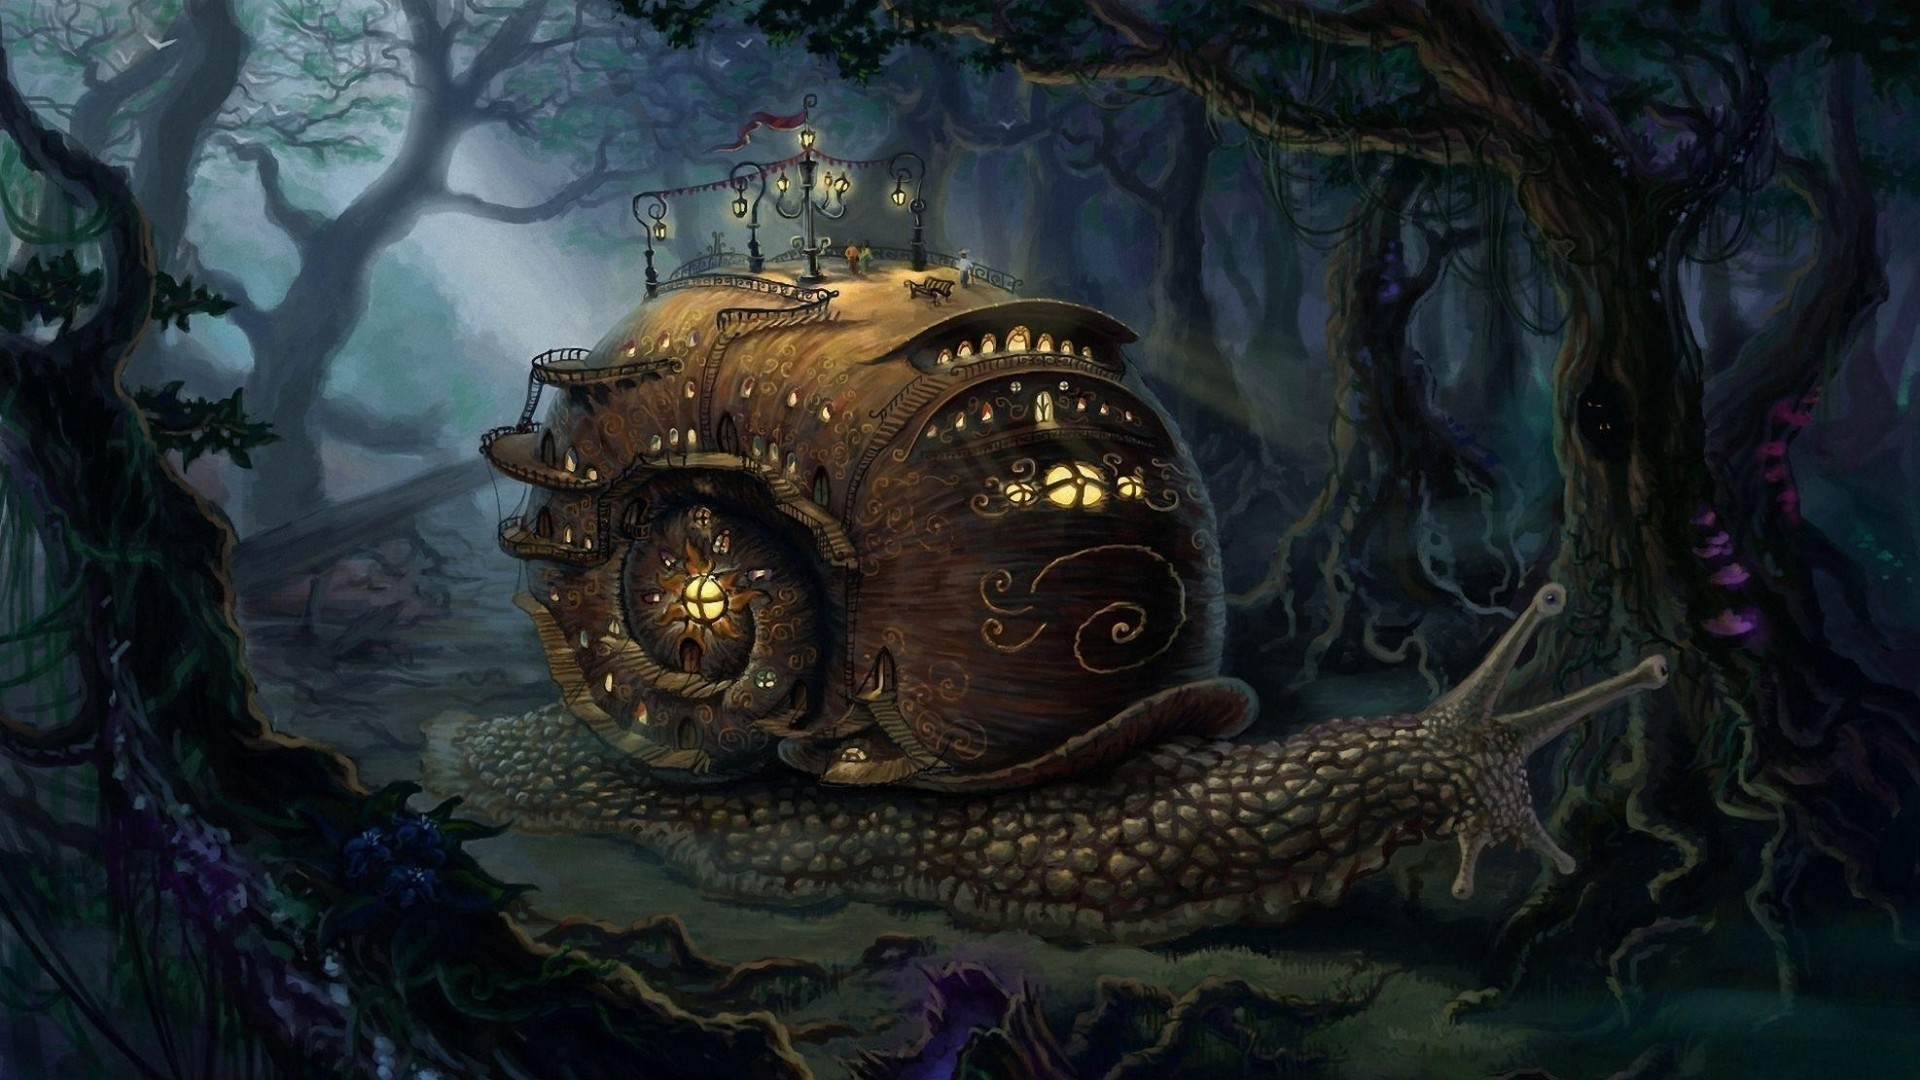 Fantasy Forest Hd High Quality Wallpapers HD Wallpapers px 1.05  MB   Wallpapers   Pinterest   Fantasy art landscapes, Steampunk city and  Steampunk